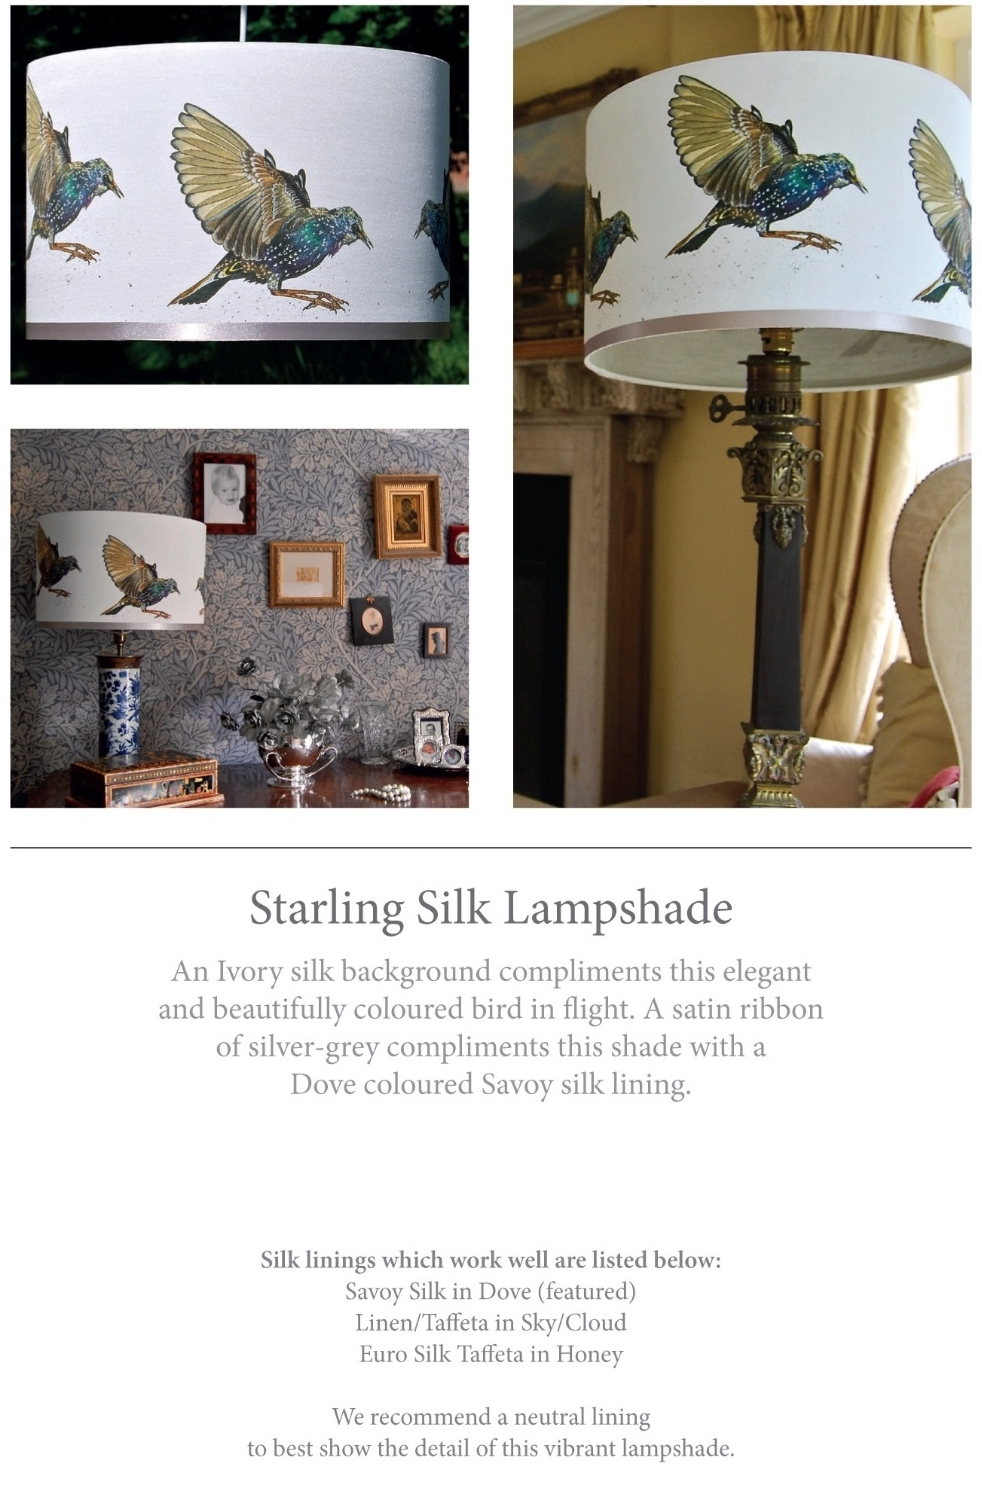 starling silk lampshade